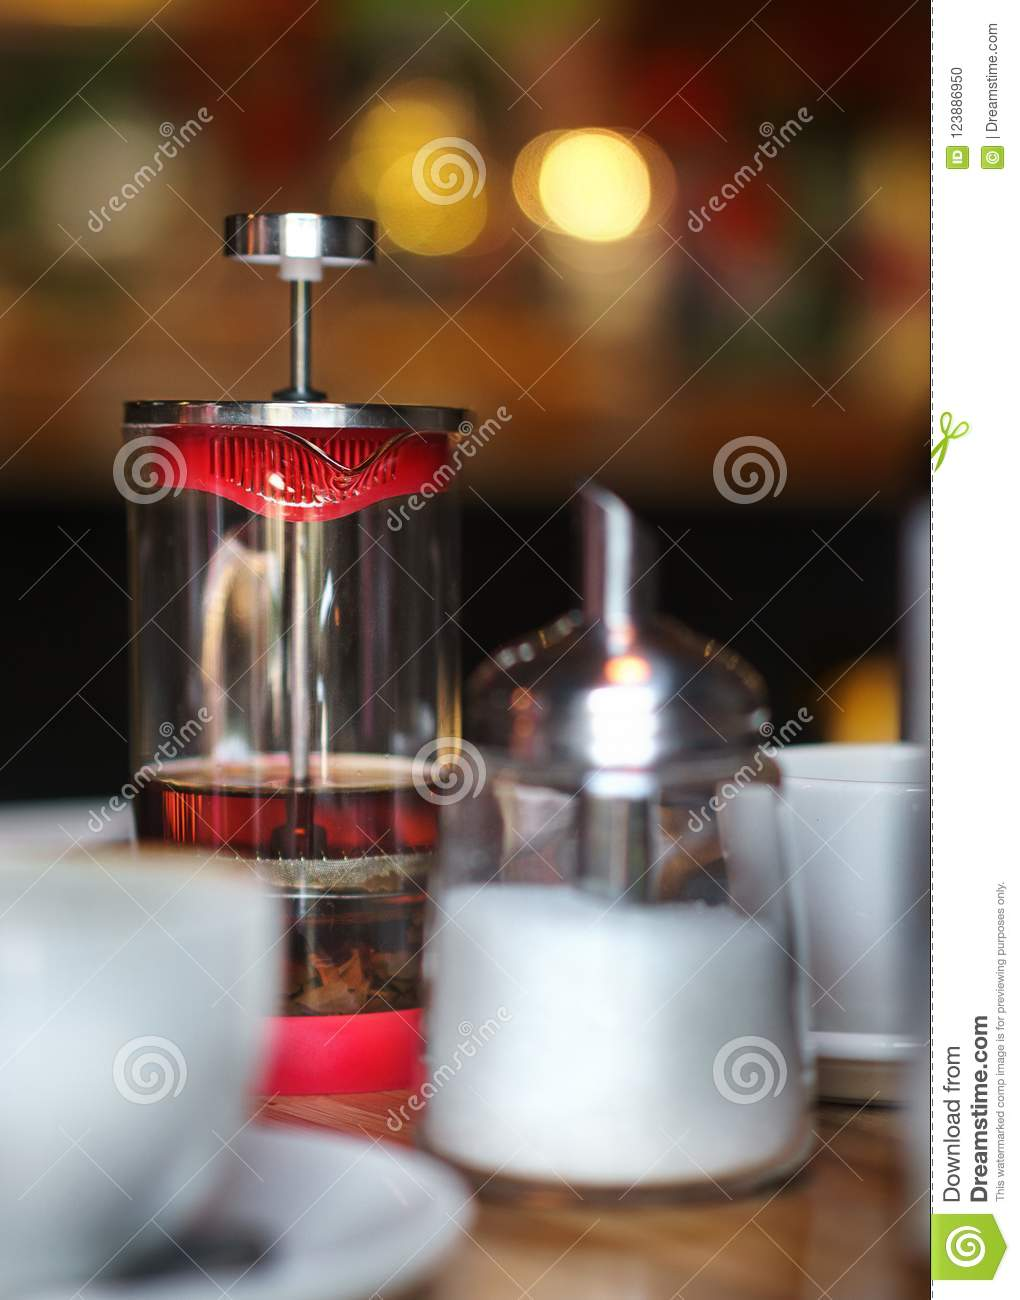 A teapot of green tea, a sugar bowl, cups are all in the foreground. On the back there is a mysterious bokeh. A cozy cafe, pleasan